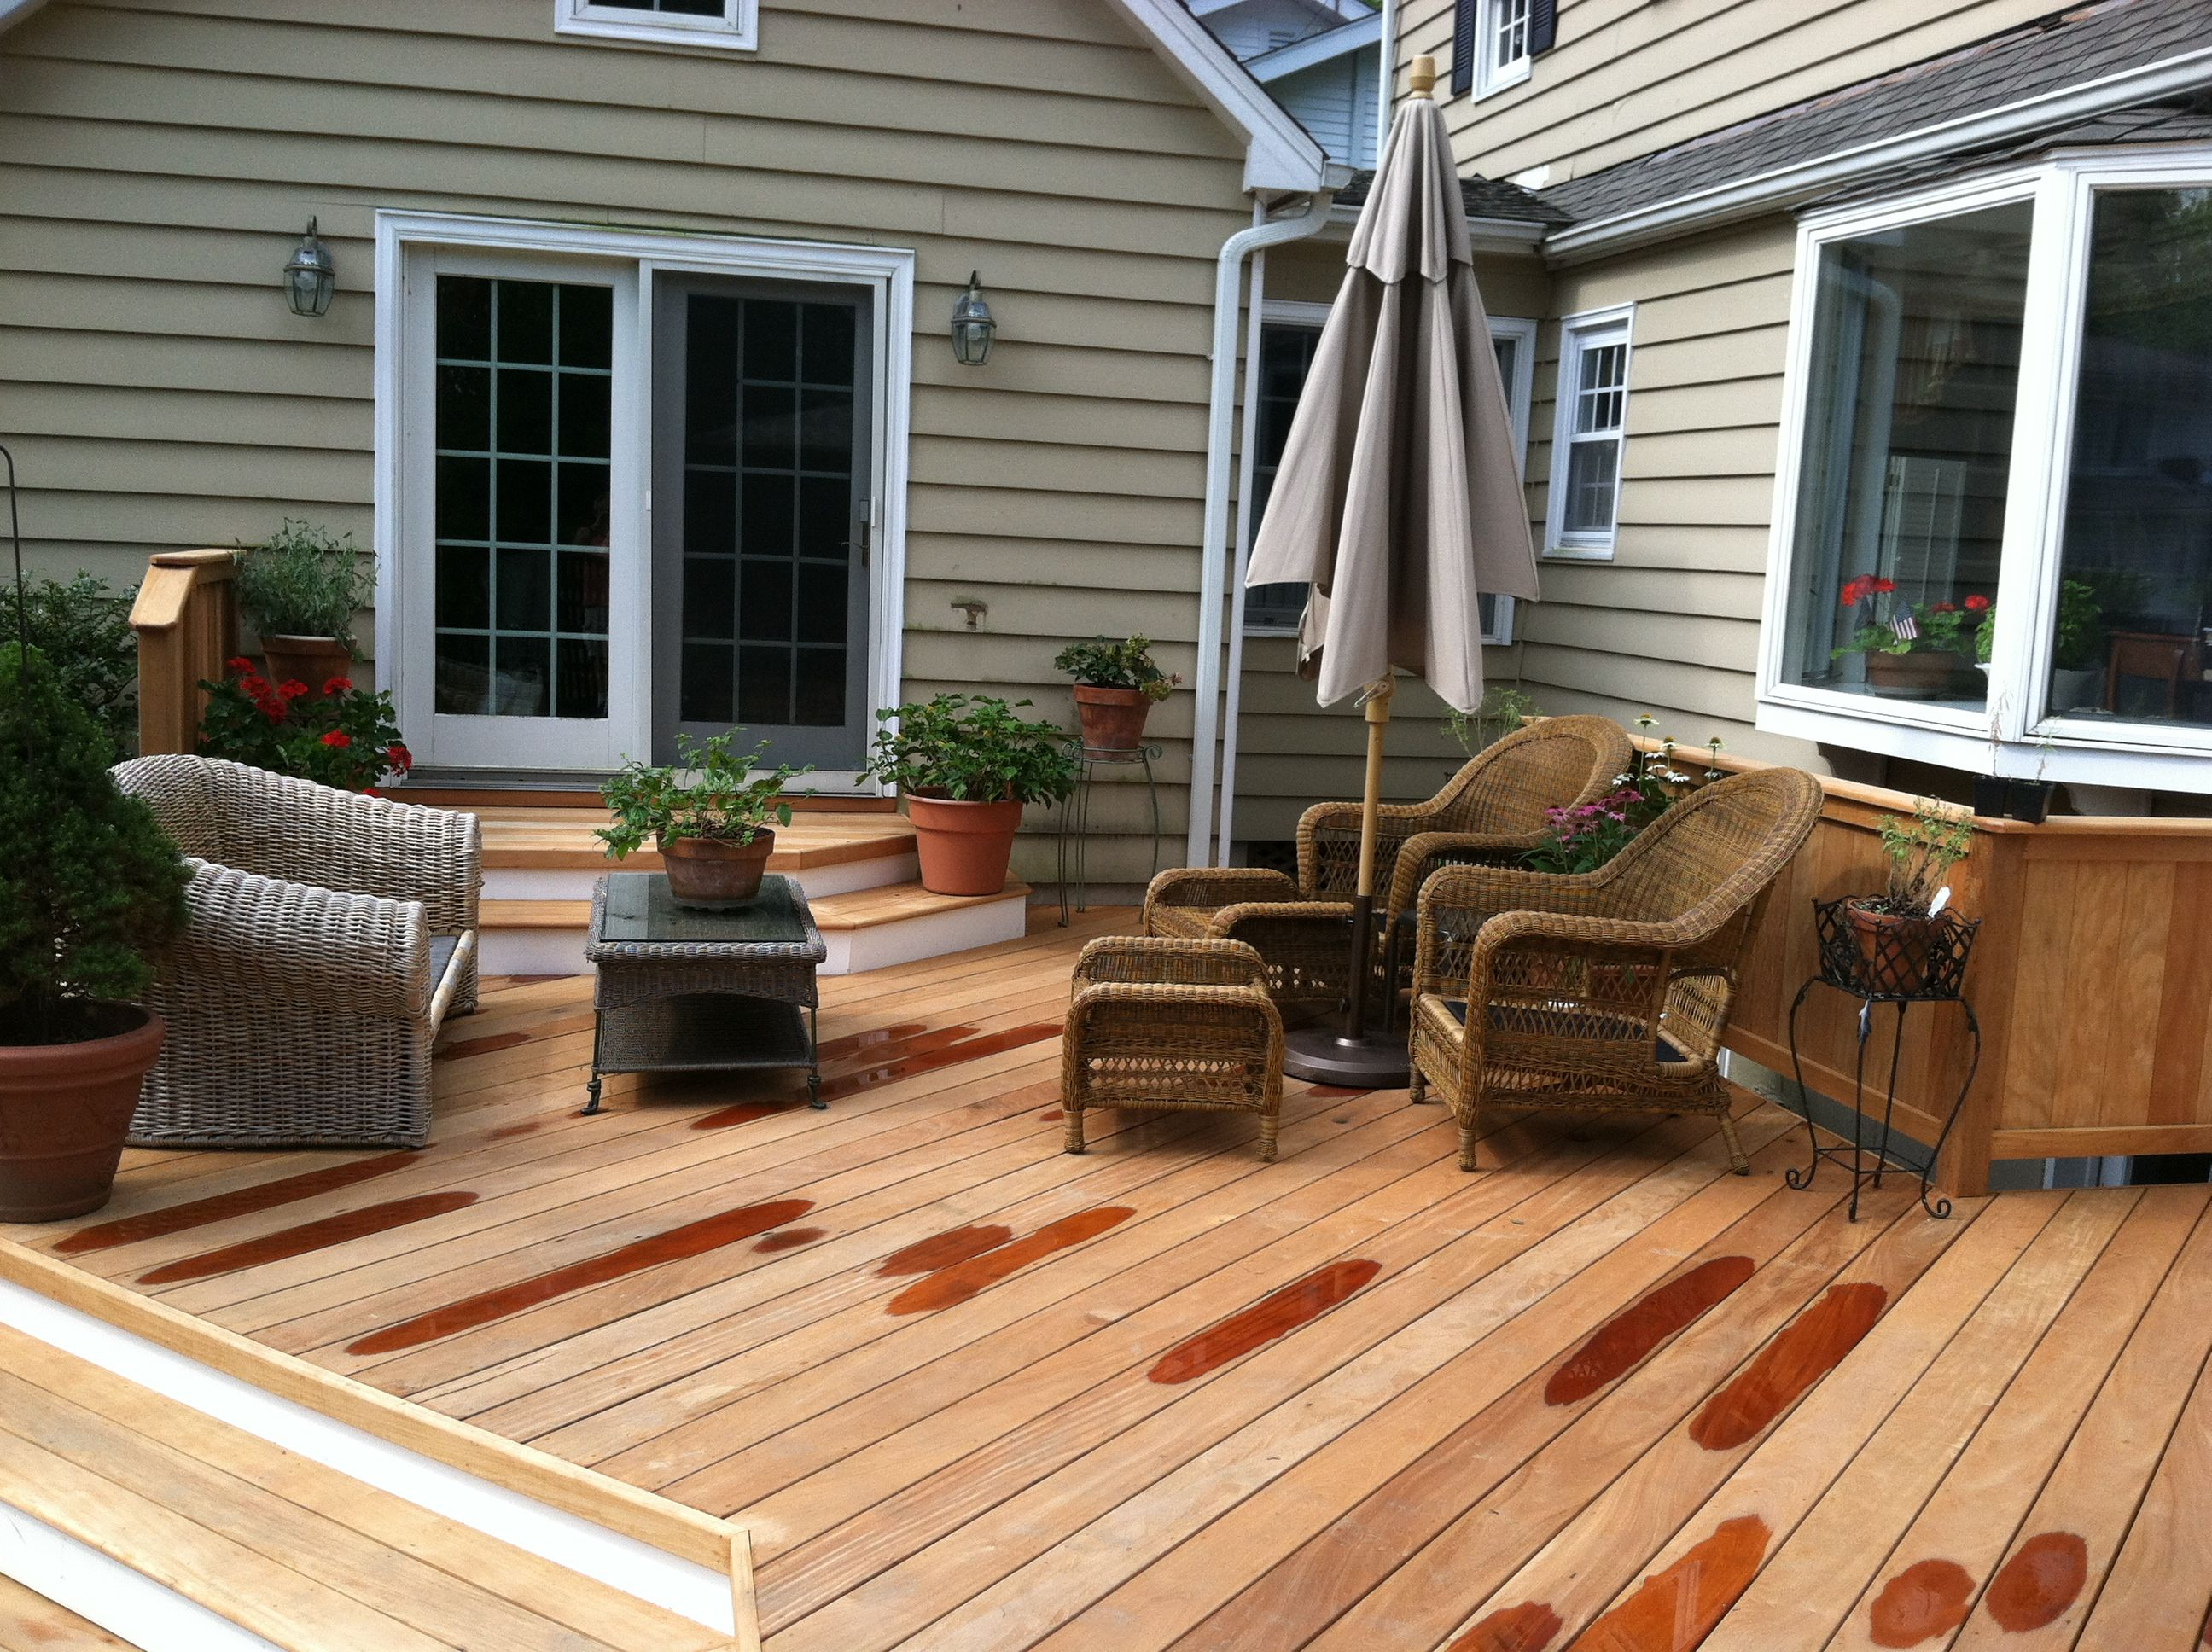 Garapa Deck in Old Greenwich, CT | Small outdoor spaces ...